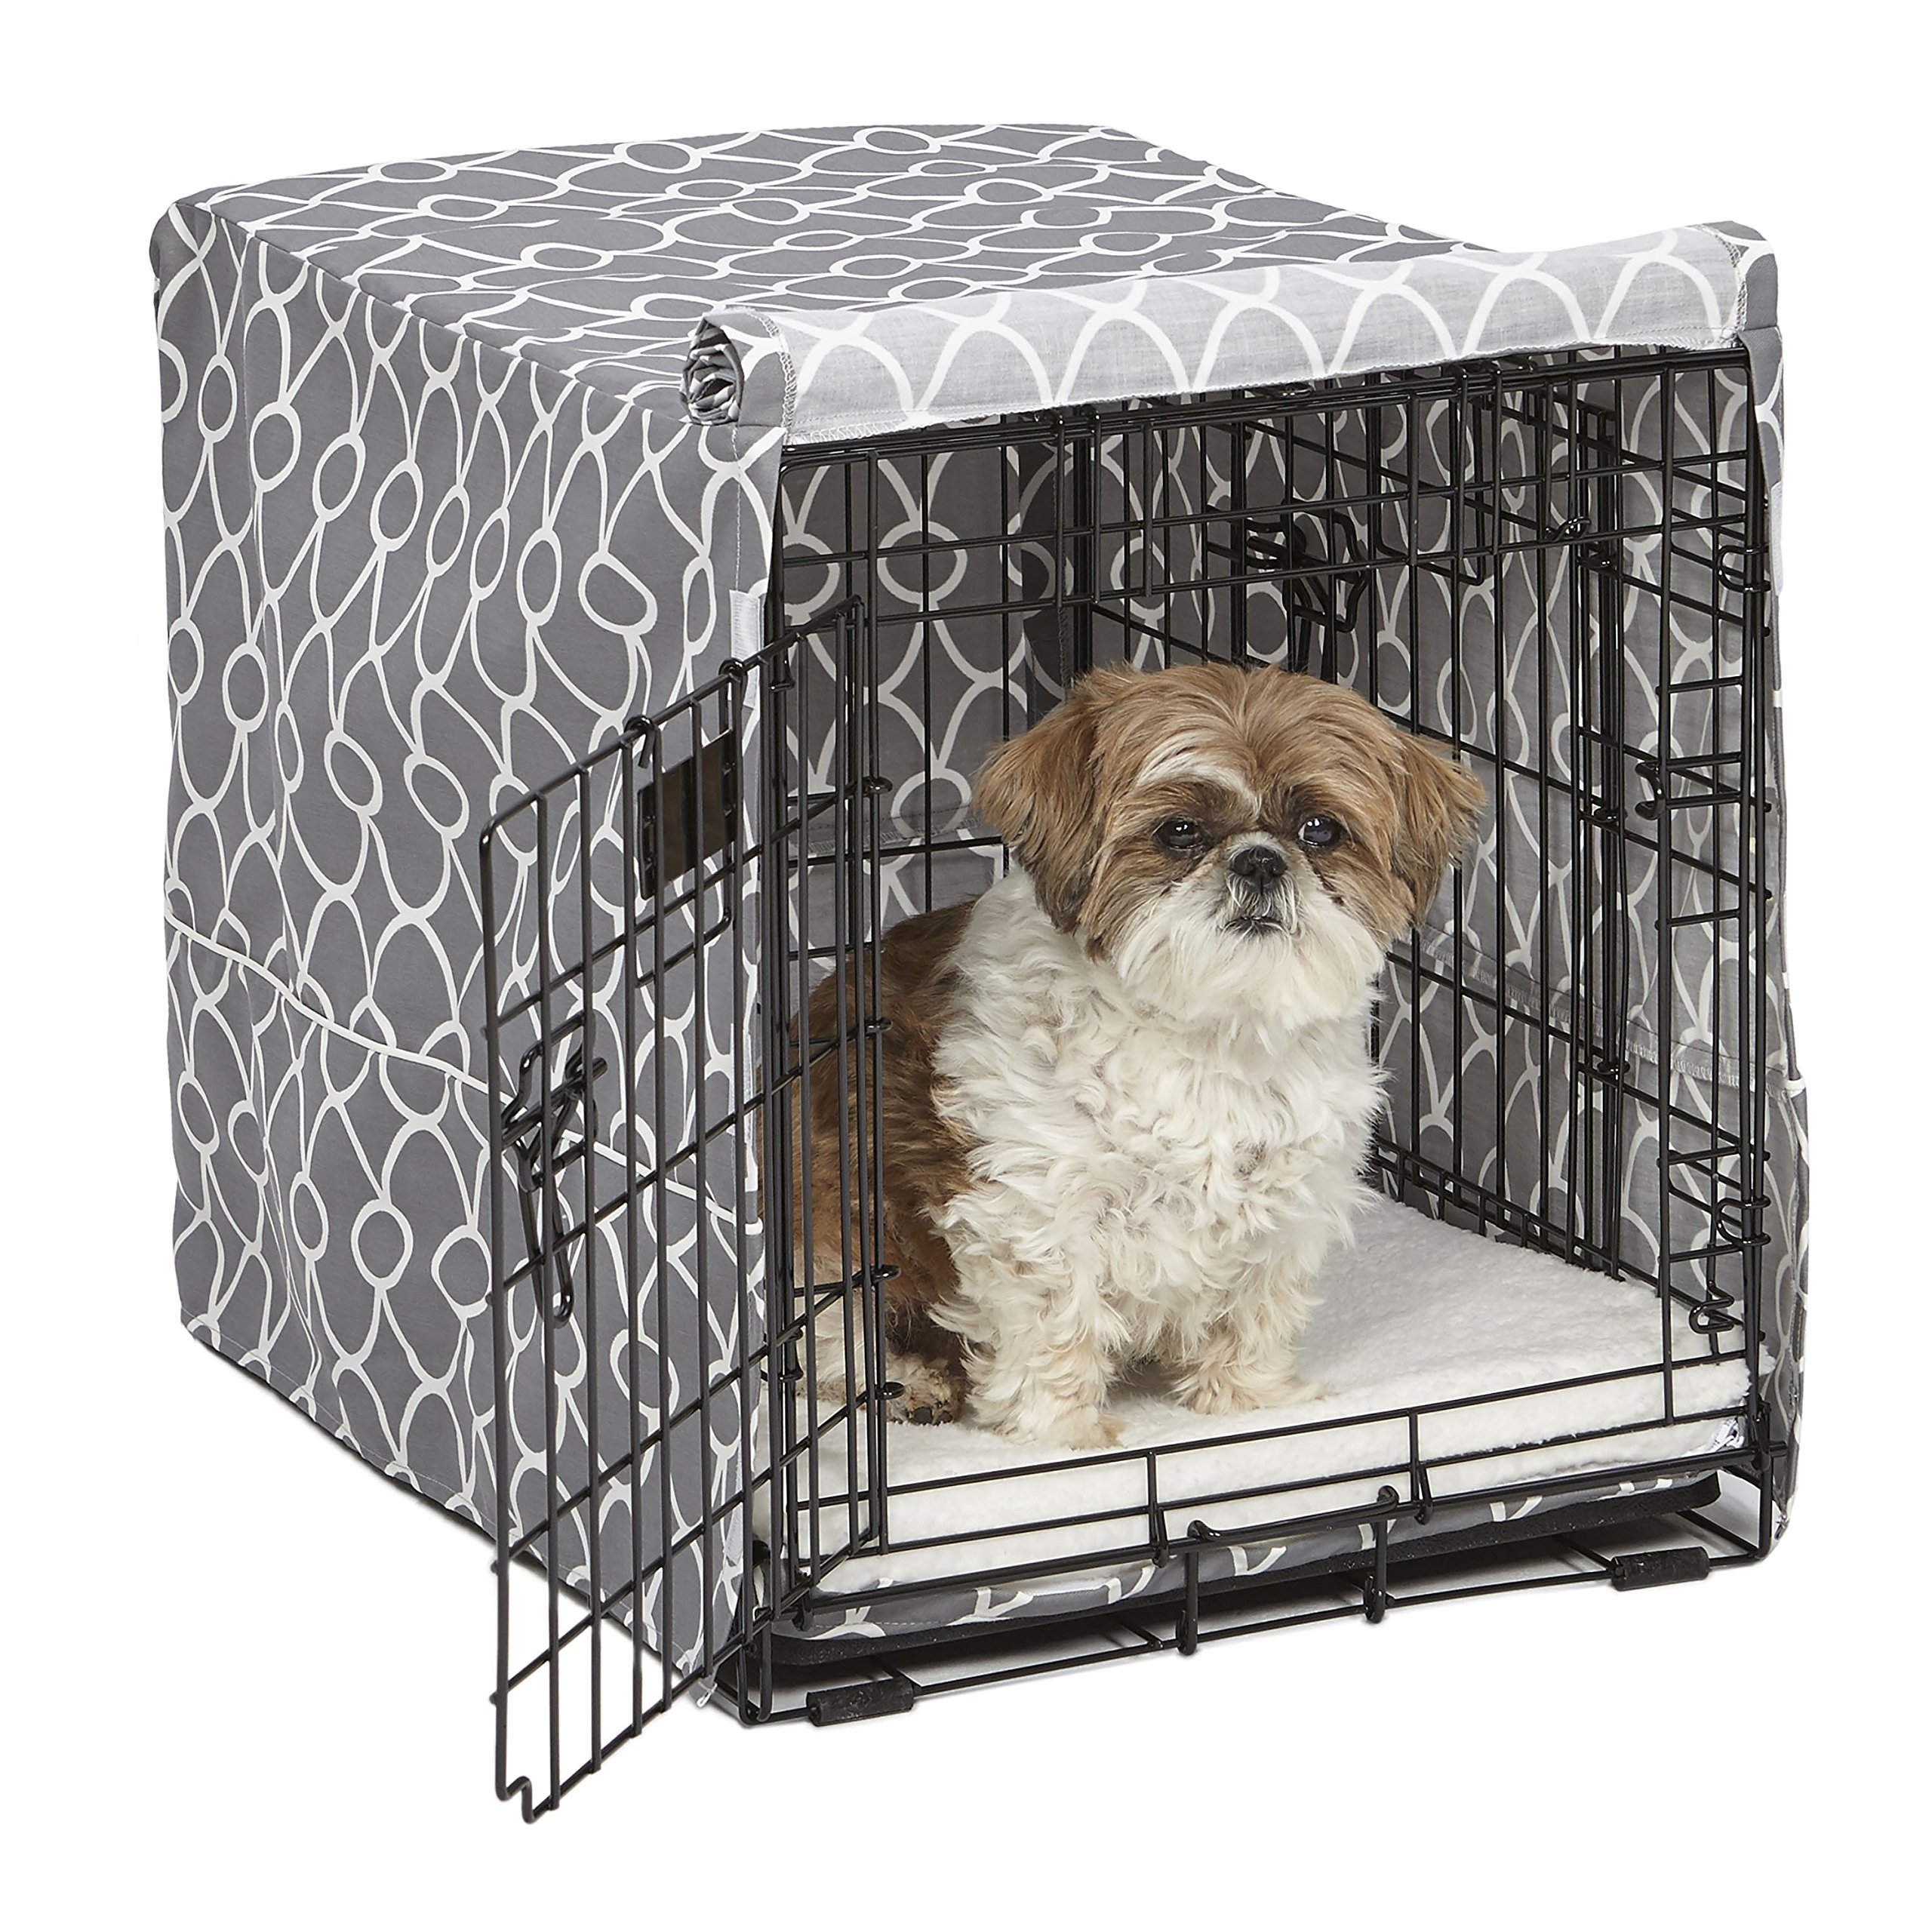 Midwest Homes for Pets Dog Crate Cover, Gray Geometric Pattern, 24-Inch by MidWest Homes for Pets